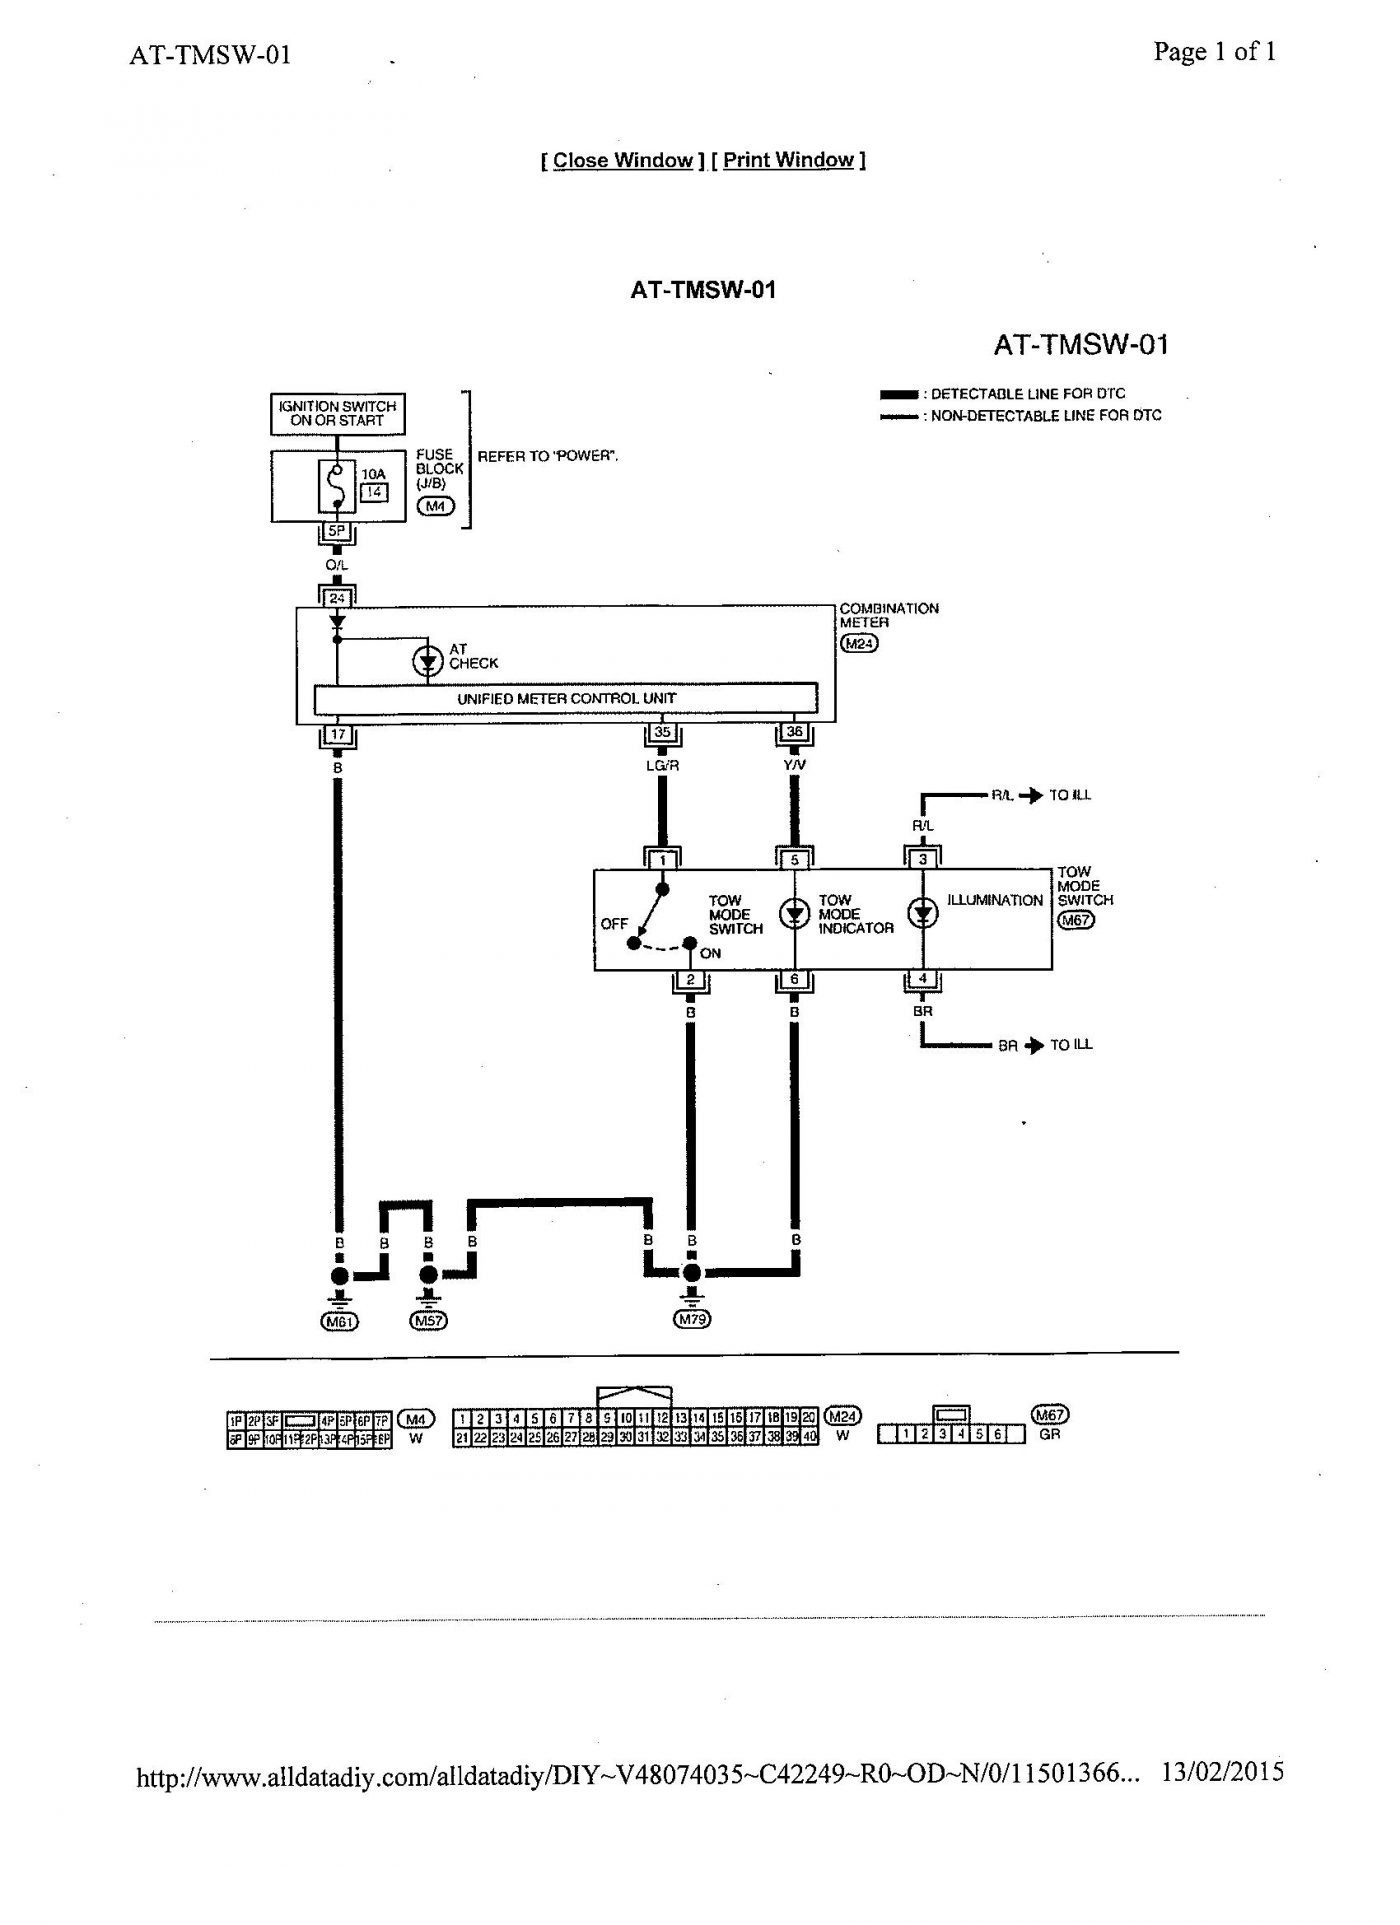 dpst rocker switch wiring diagram Collection-Dpdt Switch Wiring Diagram Guitar New Dpdt Switch Wiring Diagram Inspirational Spst toggle Switch Wiring 14-s